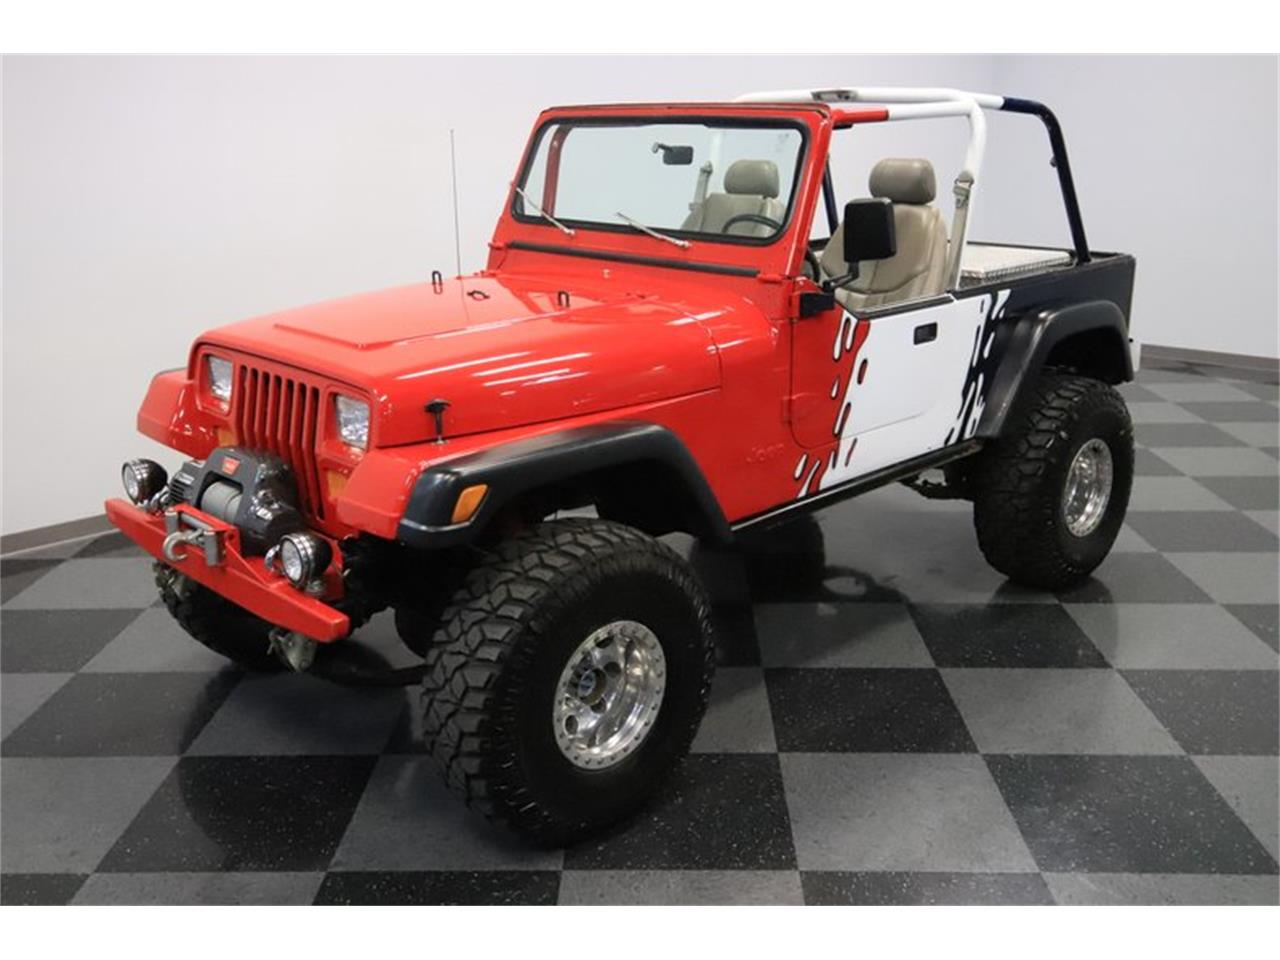 Large Picture of '83 Jeep CJ8 Scrambler located in Arizona - $36,995.00 Offered by Streetside Classics - Phoenix - Q5HM